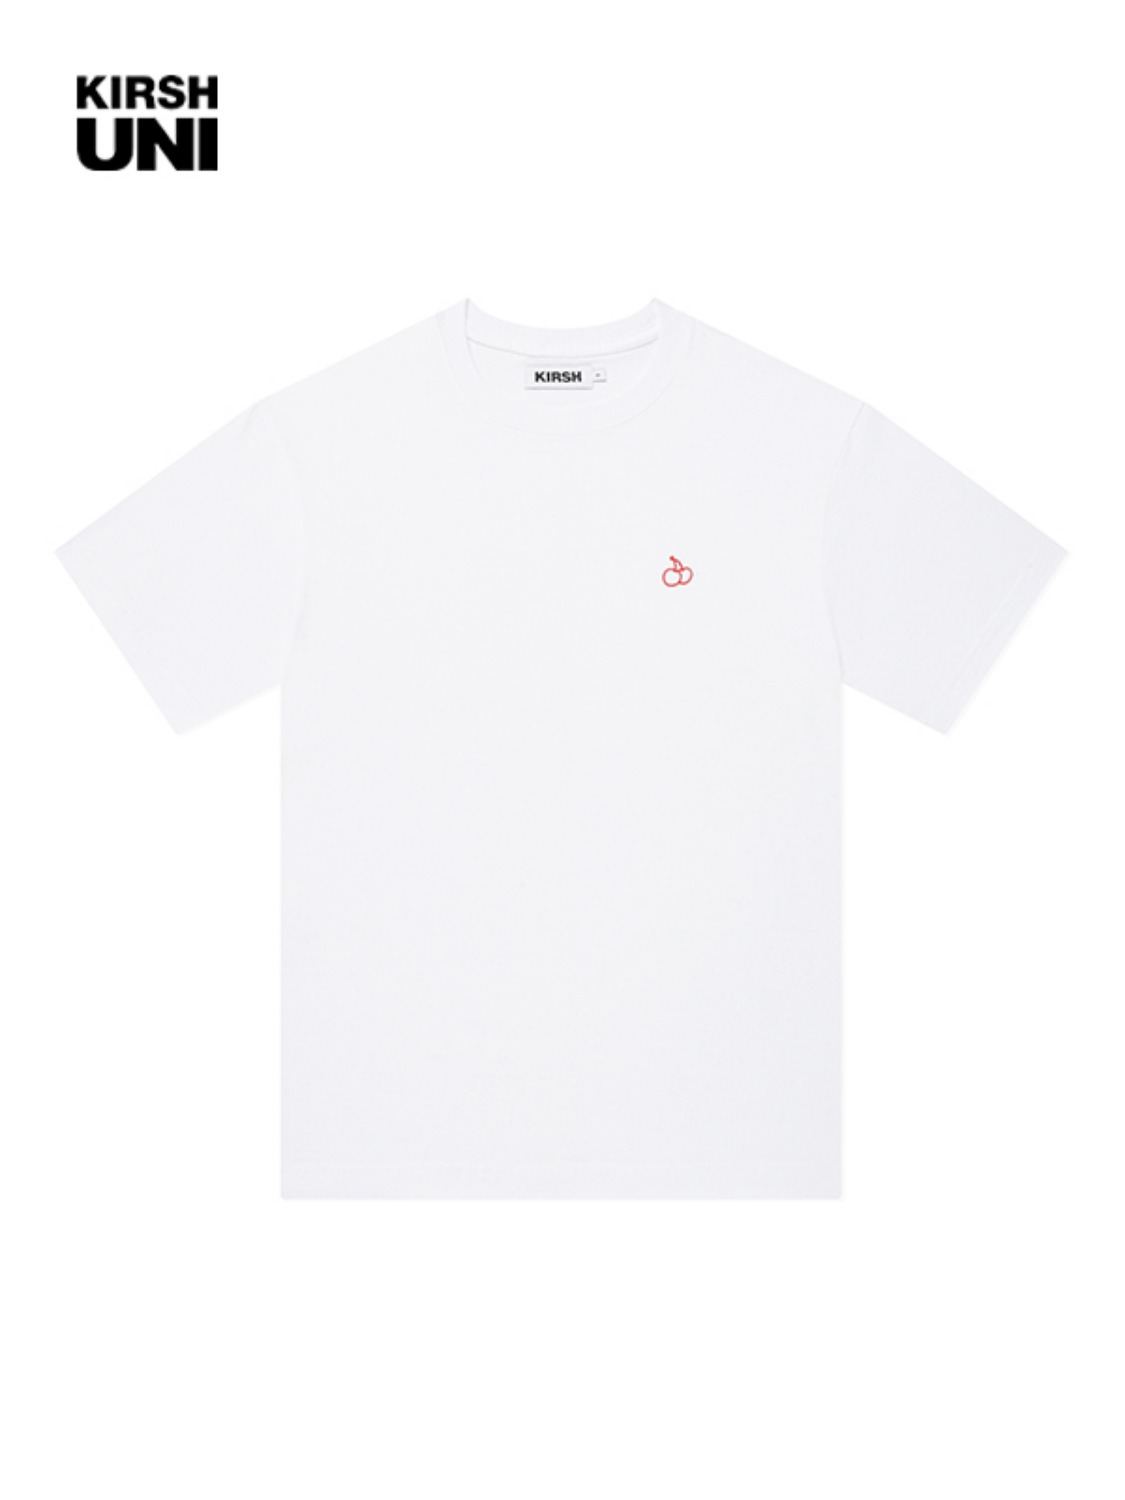 UNI OUTLINE CHERRY HALF SLEEVE T-SHIRT KS [WHITE]